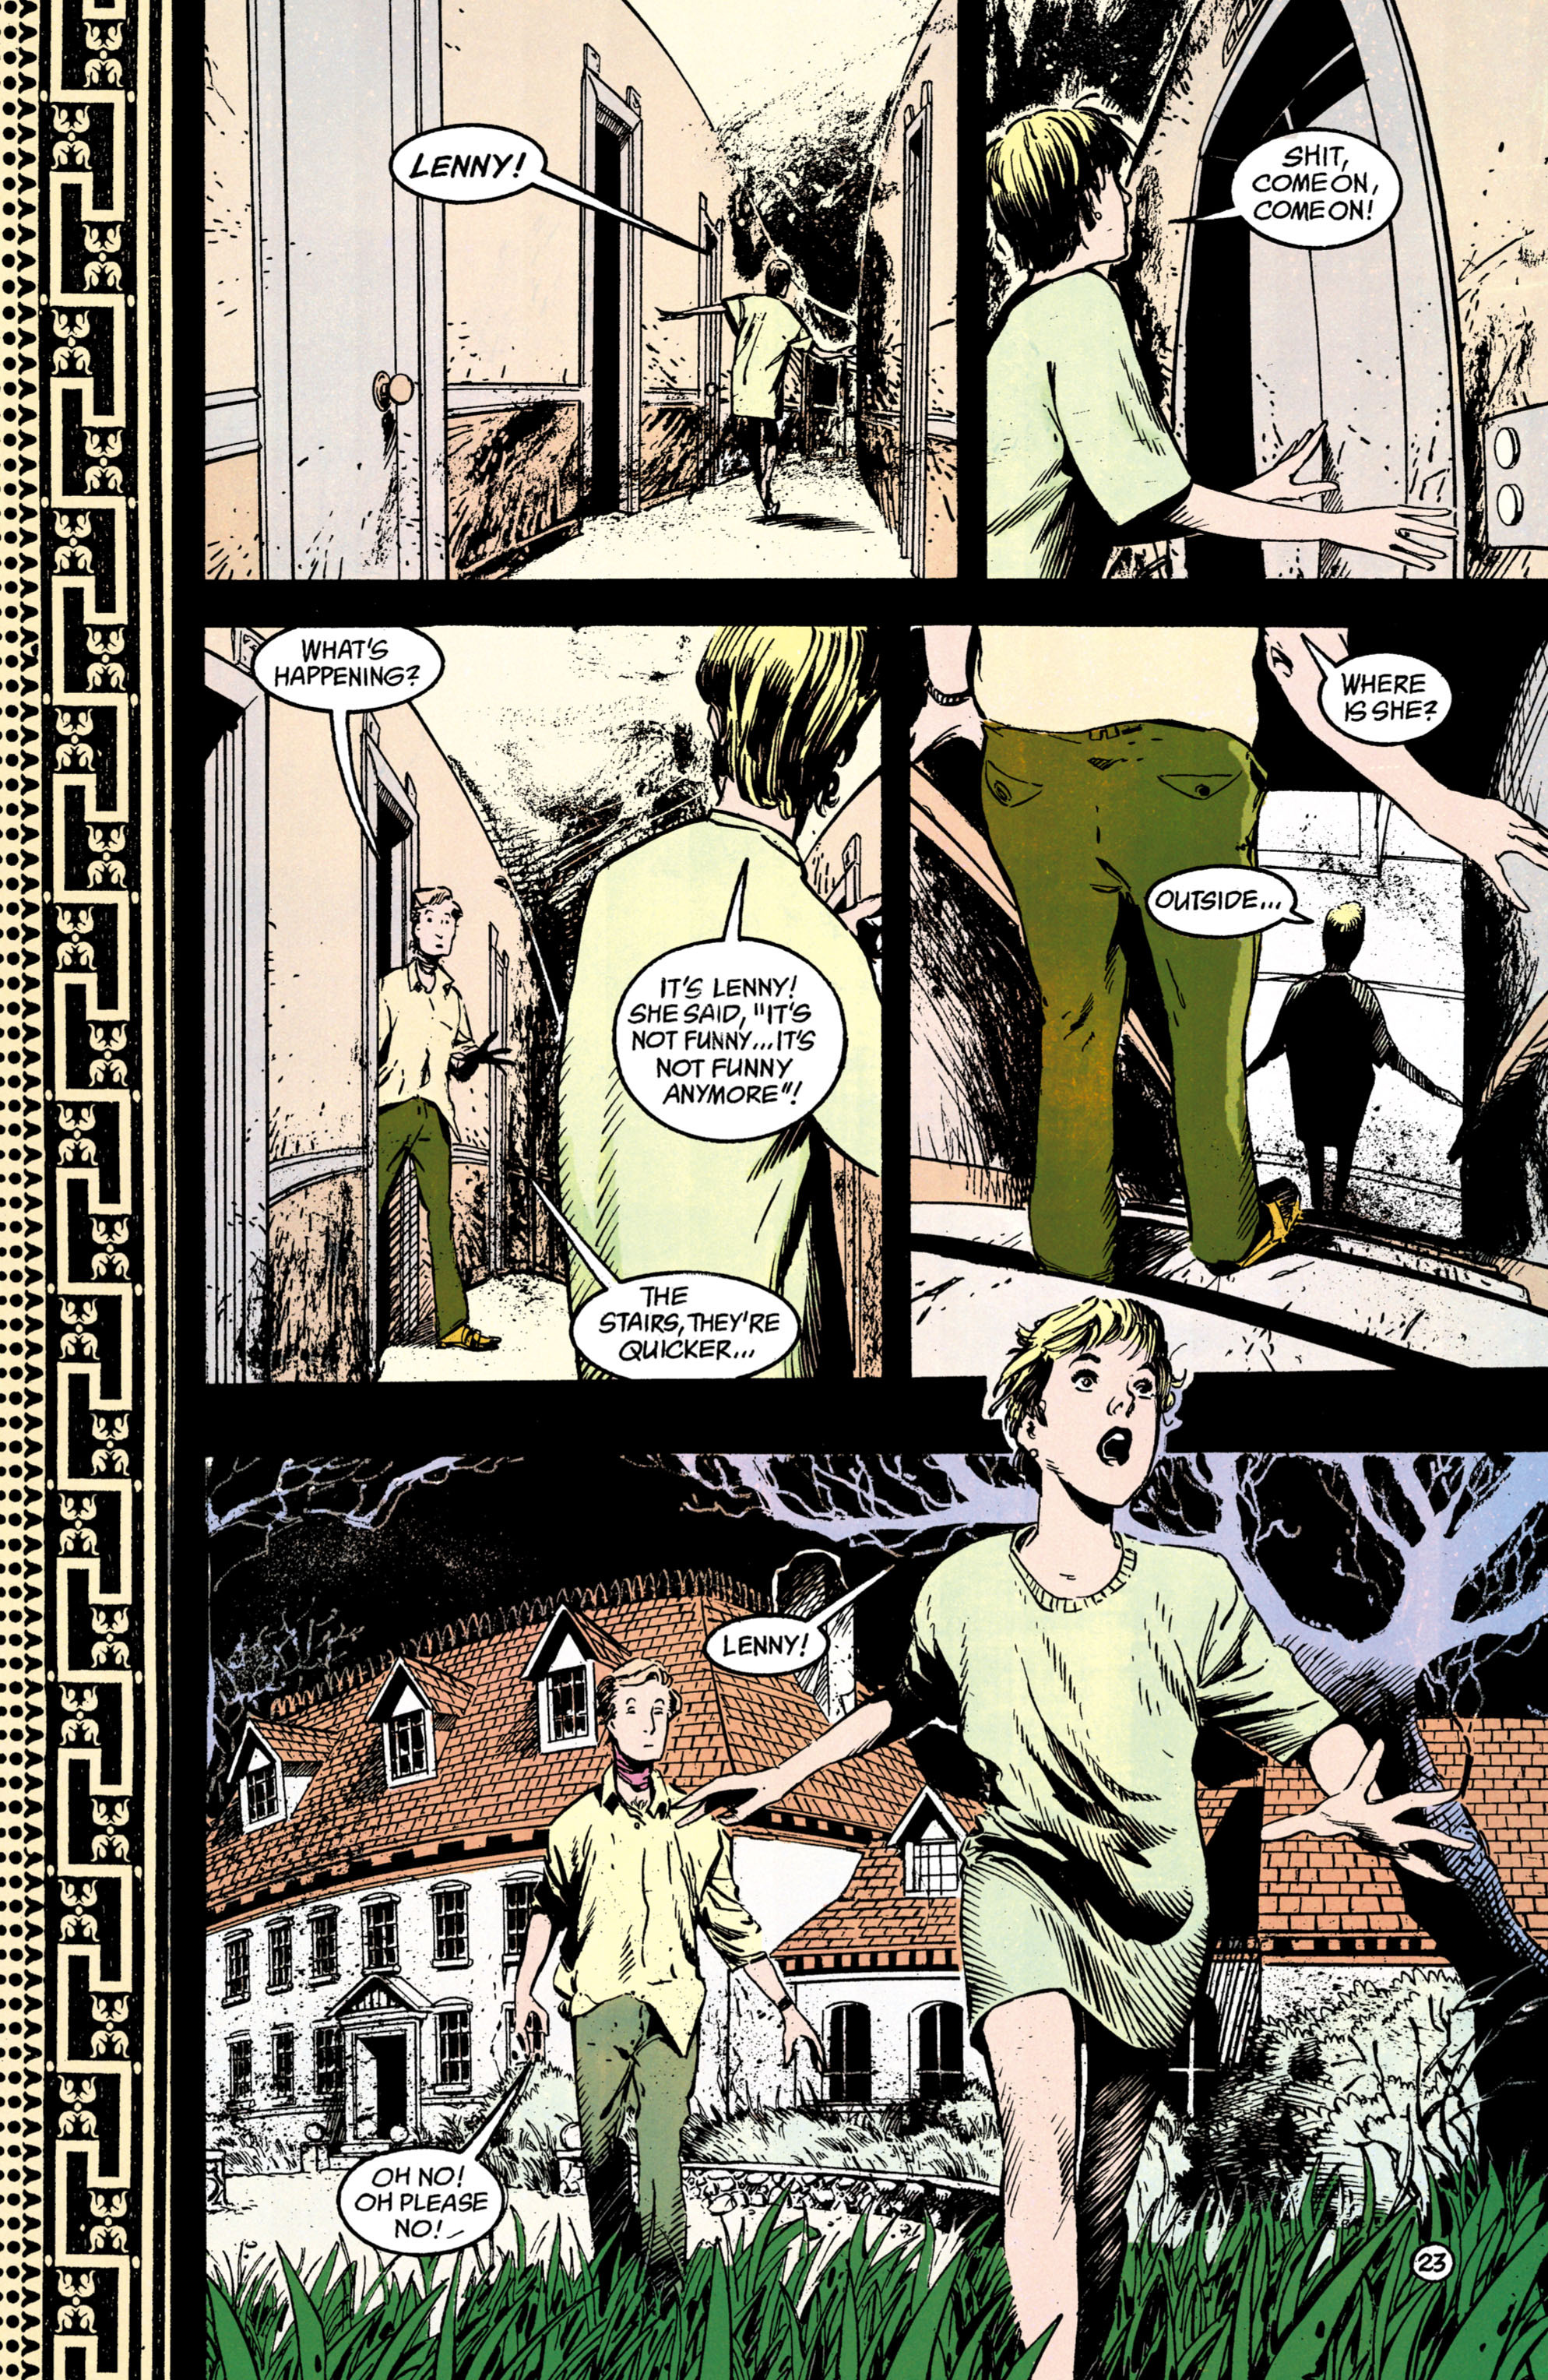 Read online Shade, the Changing Man comic -  Issue #38 - 24